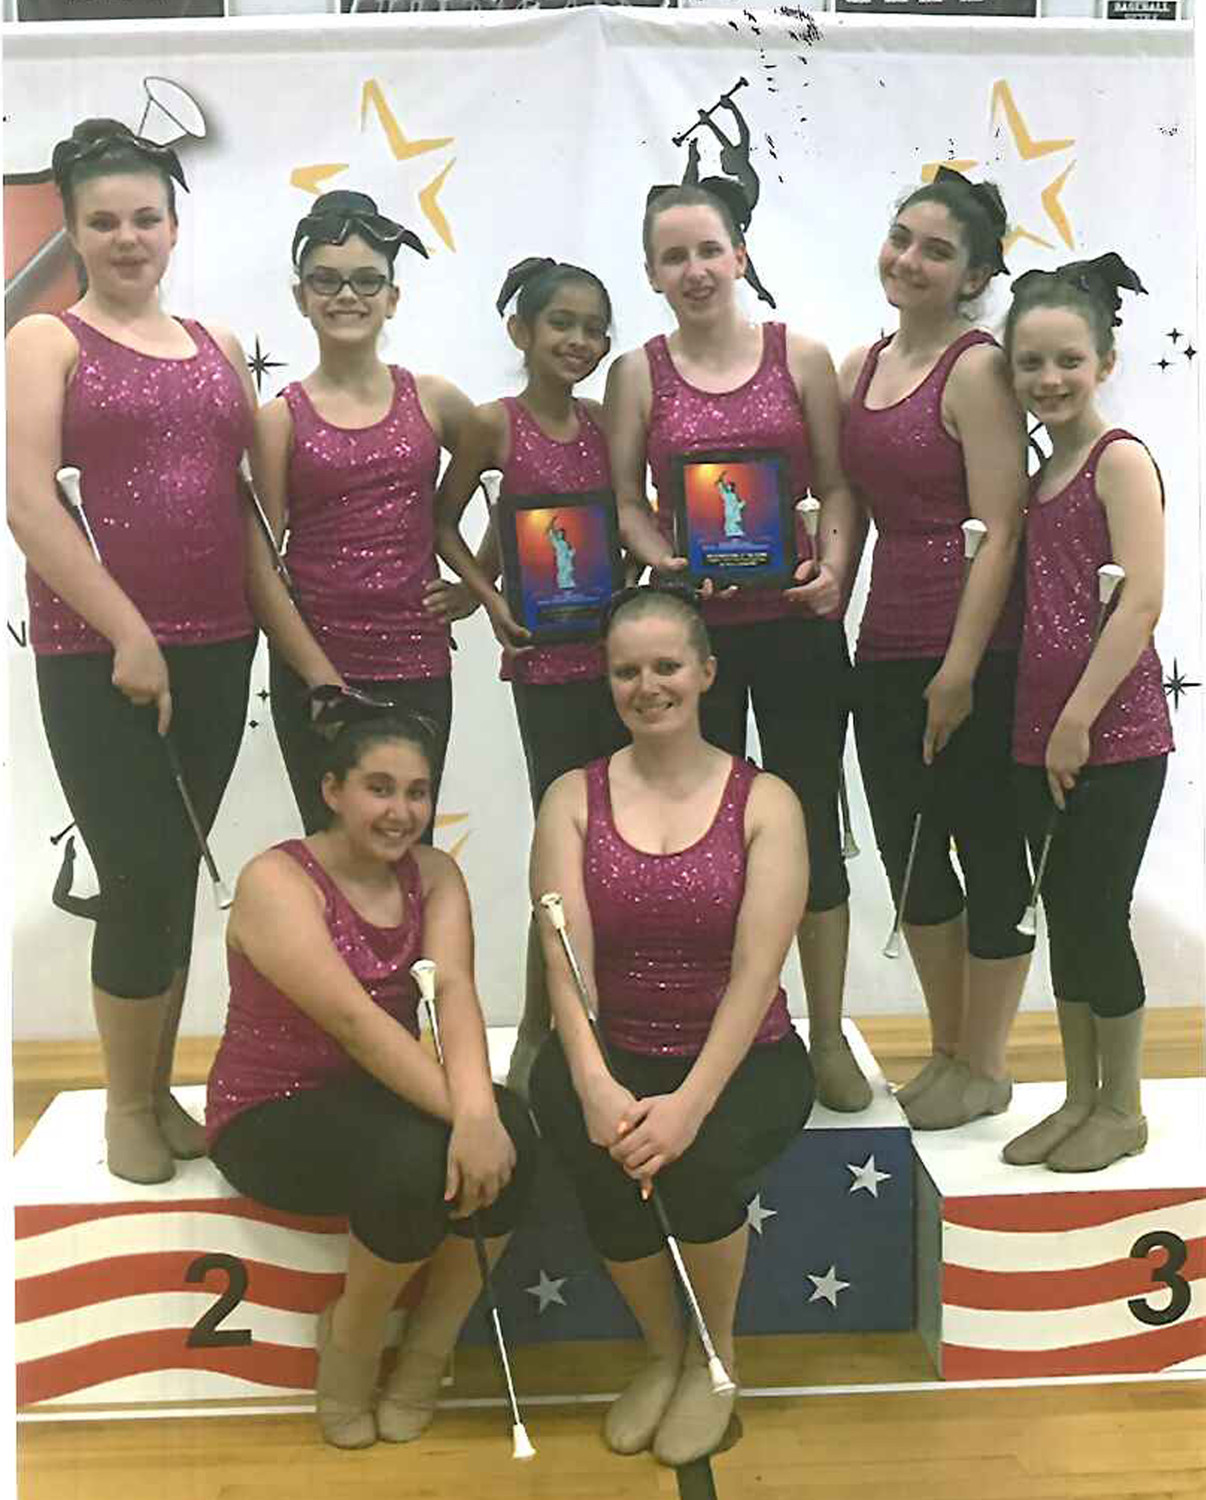 The Thunderettes team that took first place in Kutztown, Pa., in June.